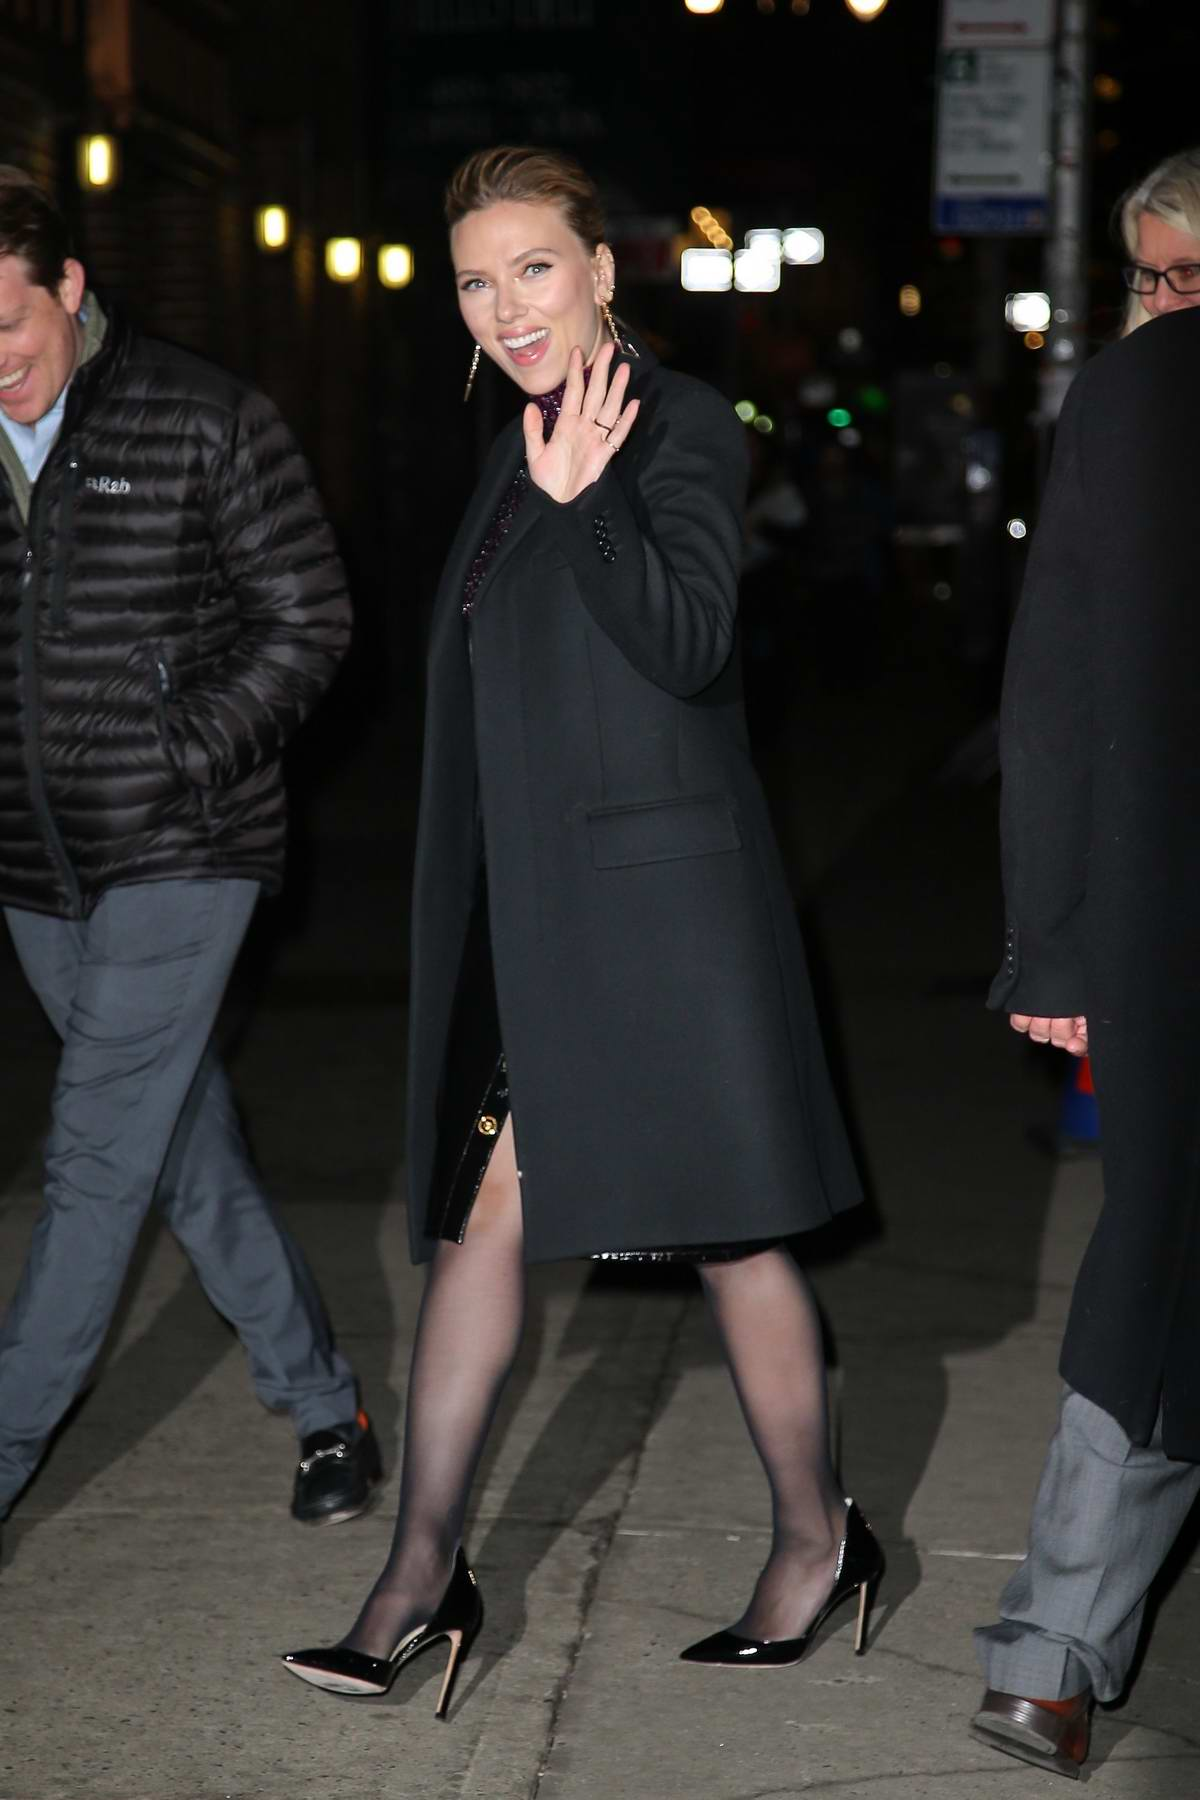 Scarlett Johansson flashes a big smile and waves for the camera as she arrives at 'The Late Show With Stephen Colbert' in New York City